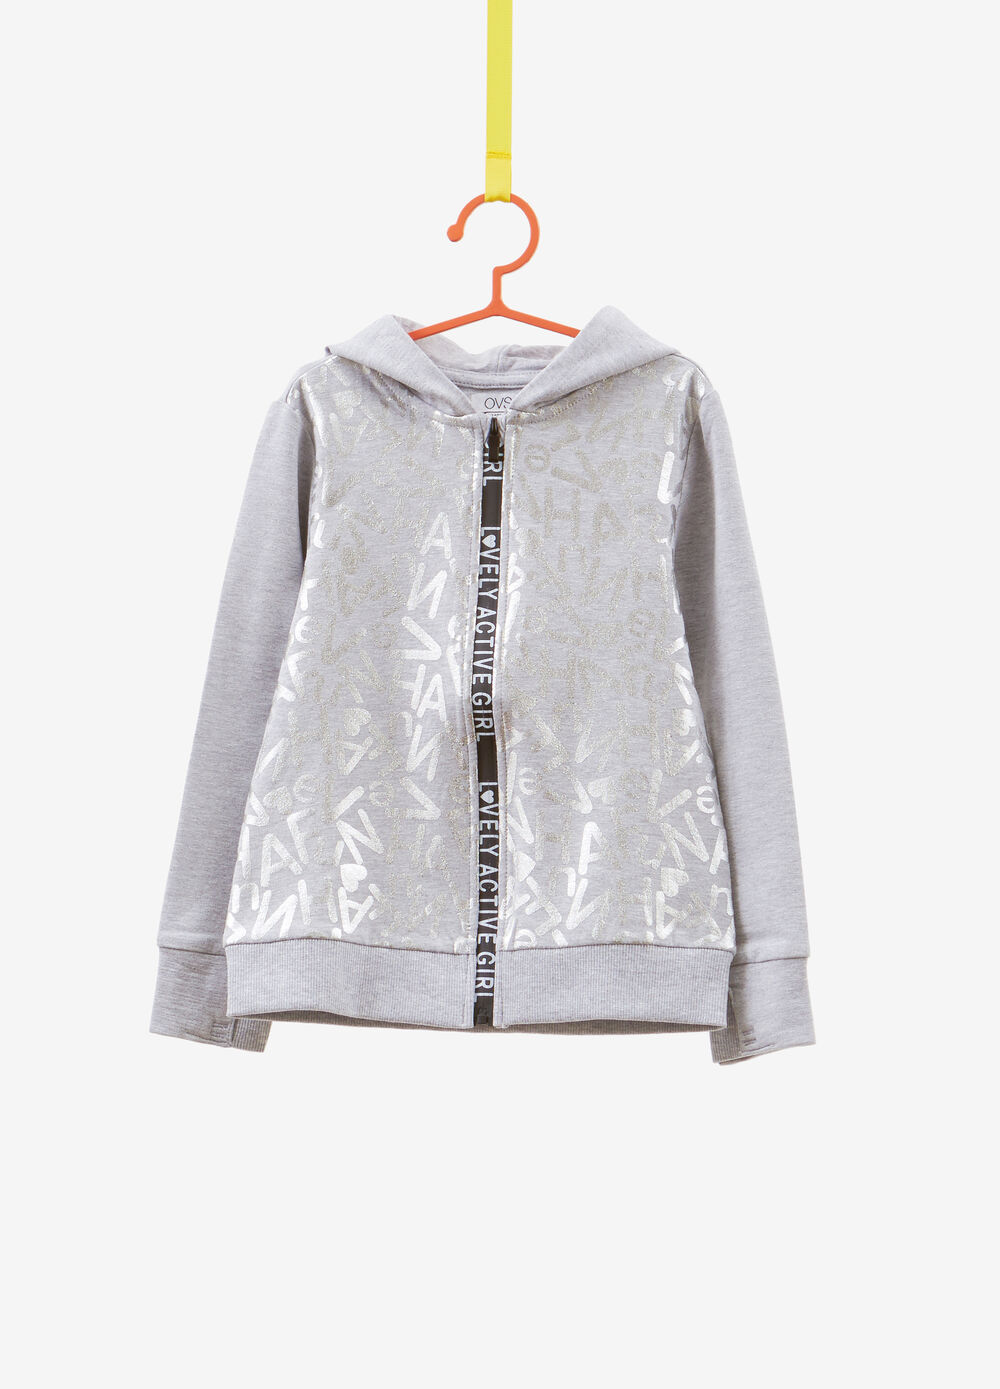 Sweatshirt in stretch cotton with printed lettering